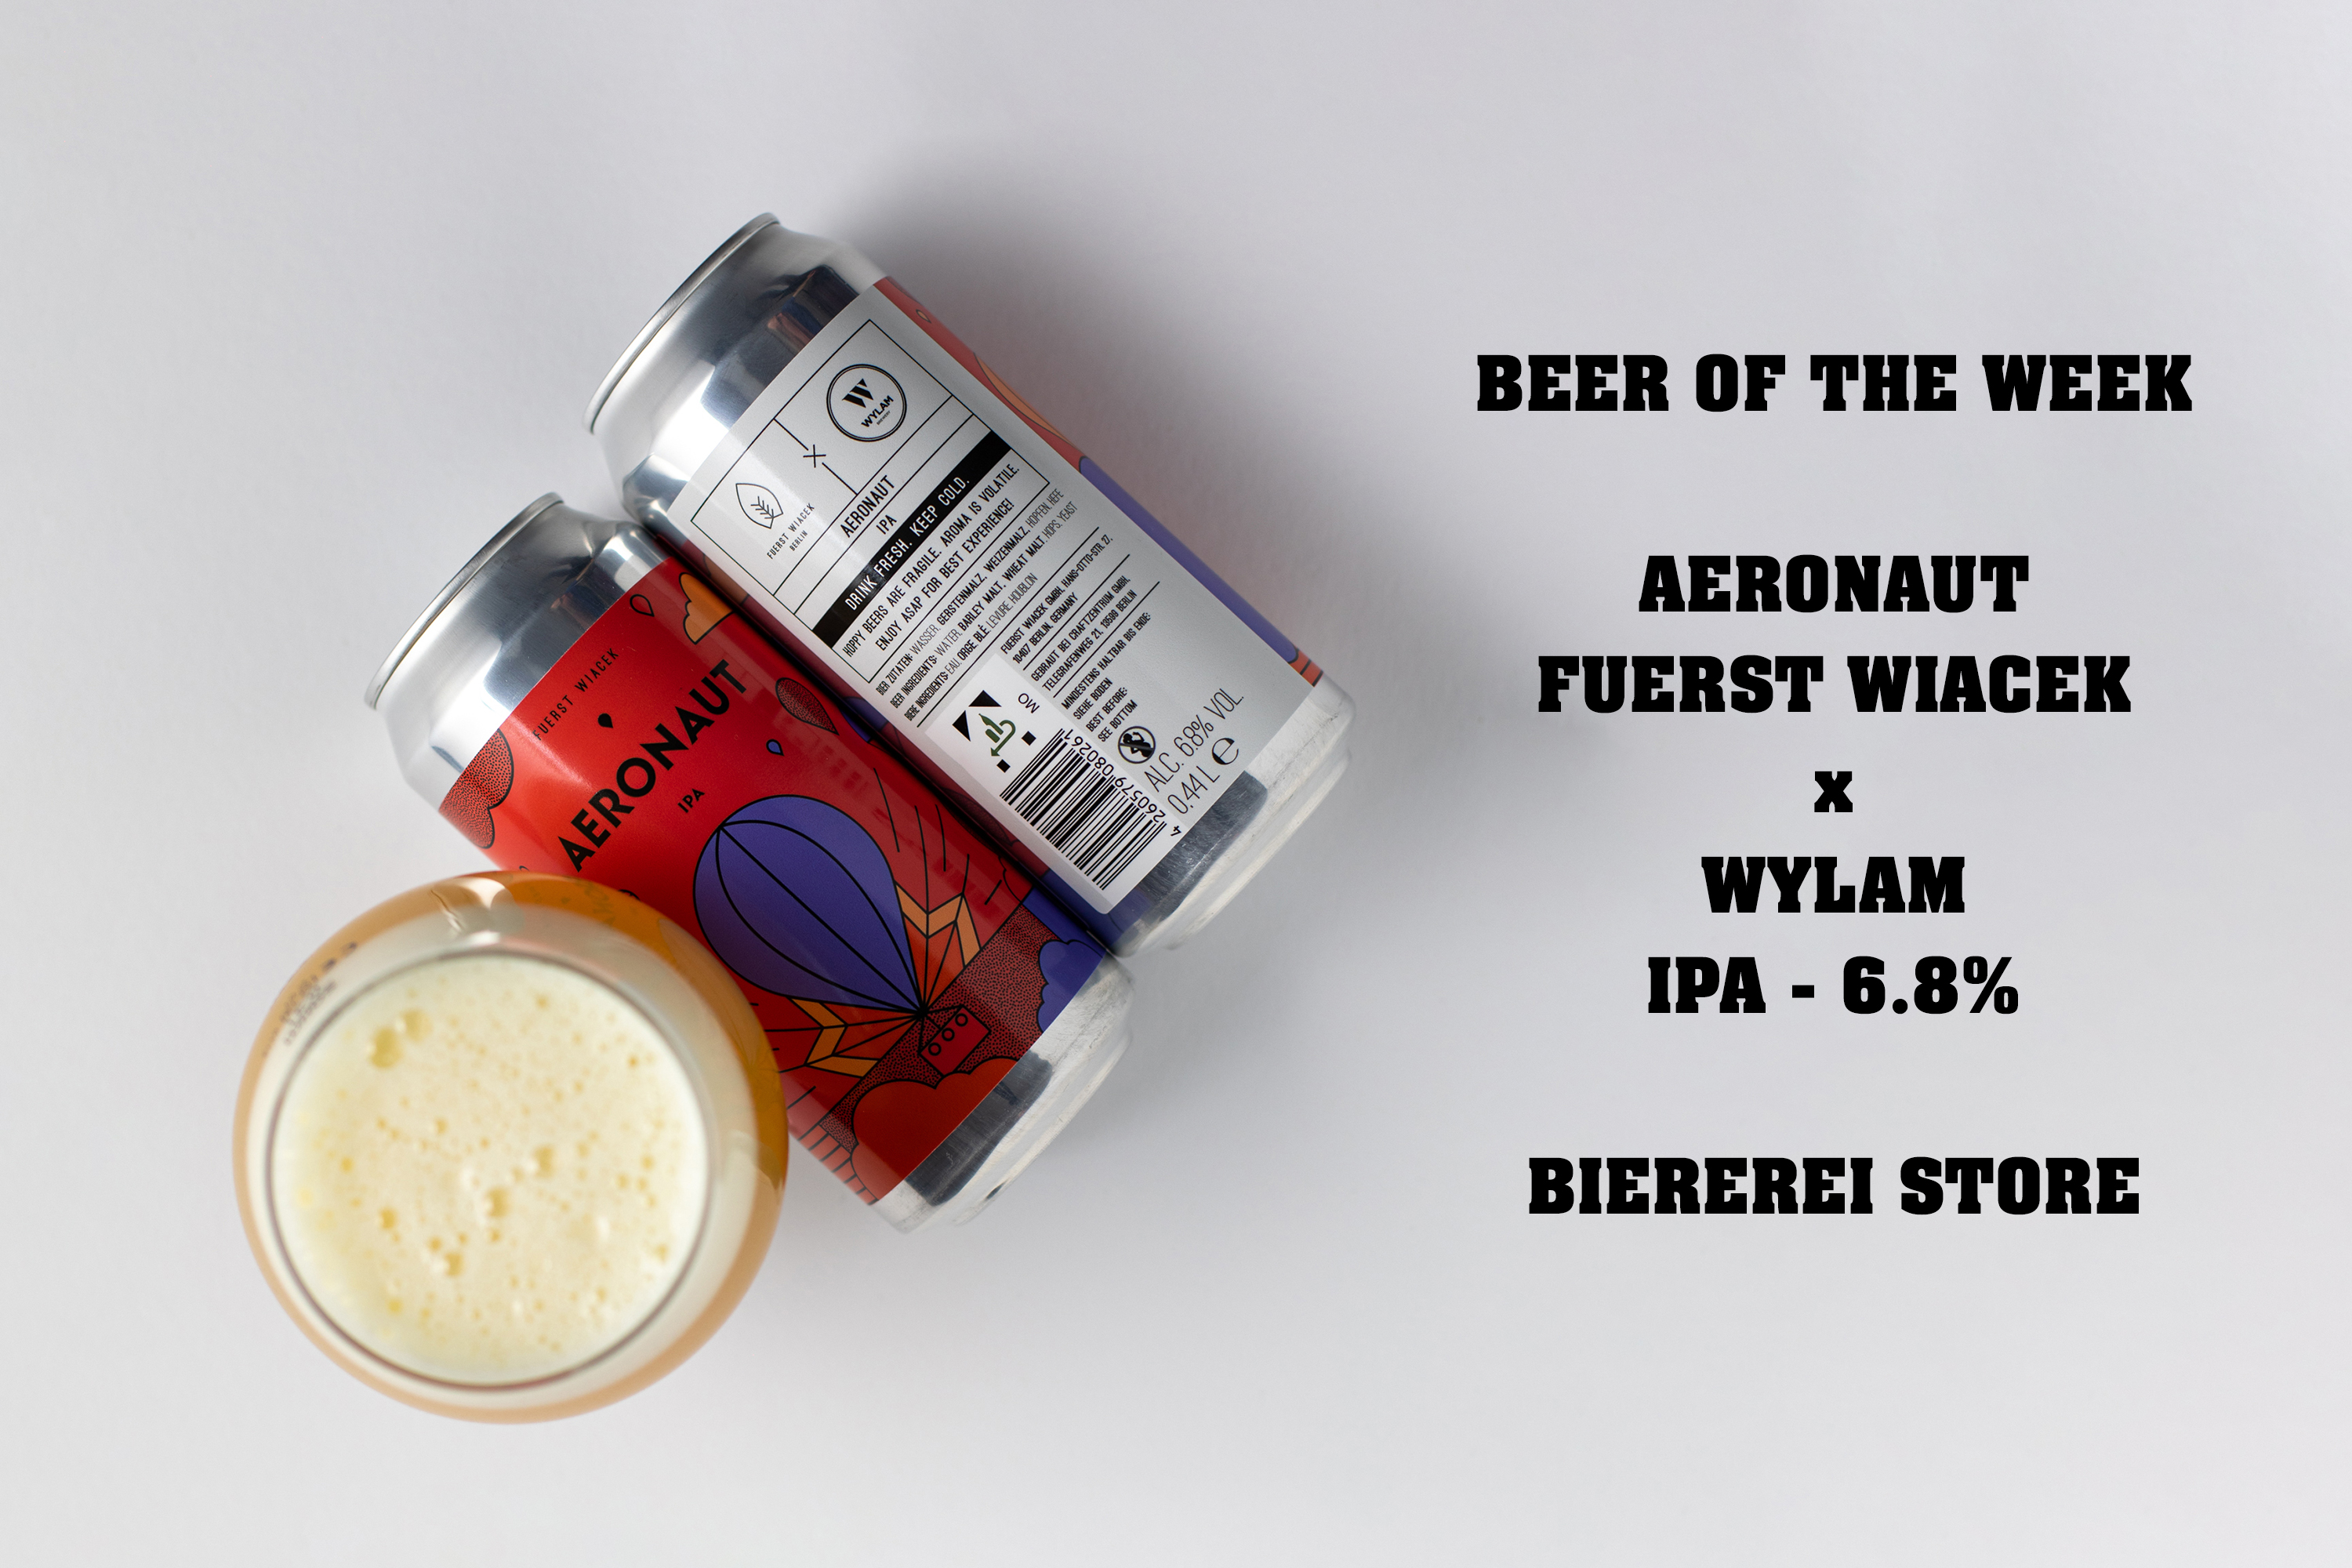 Aeronaut, a 6.8% IPA brewed by Fuerst Wiacek in collaboration with Wylam Brewery